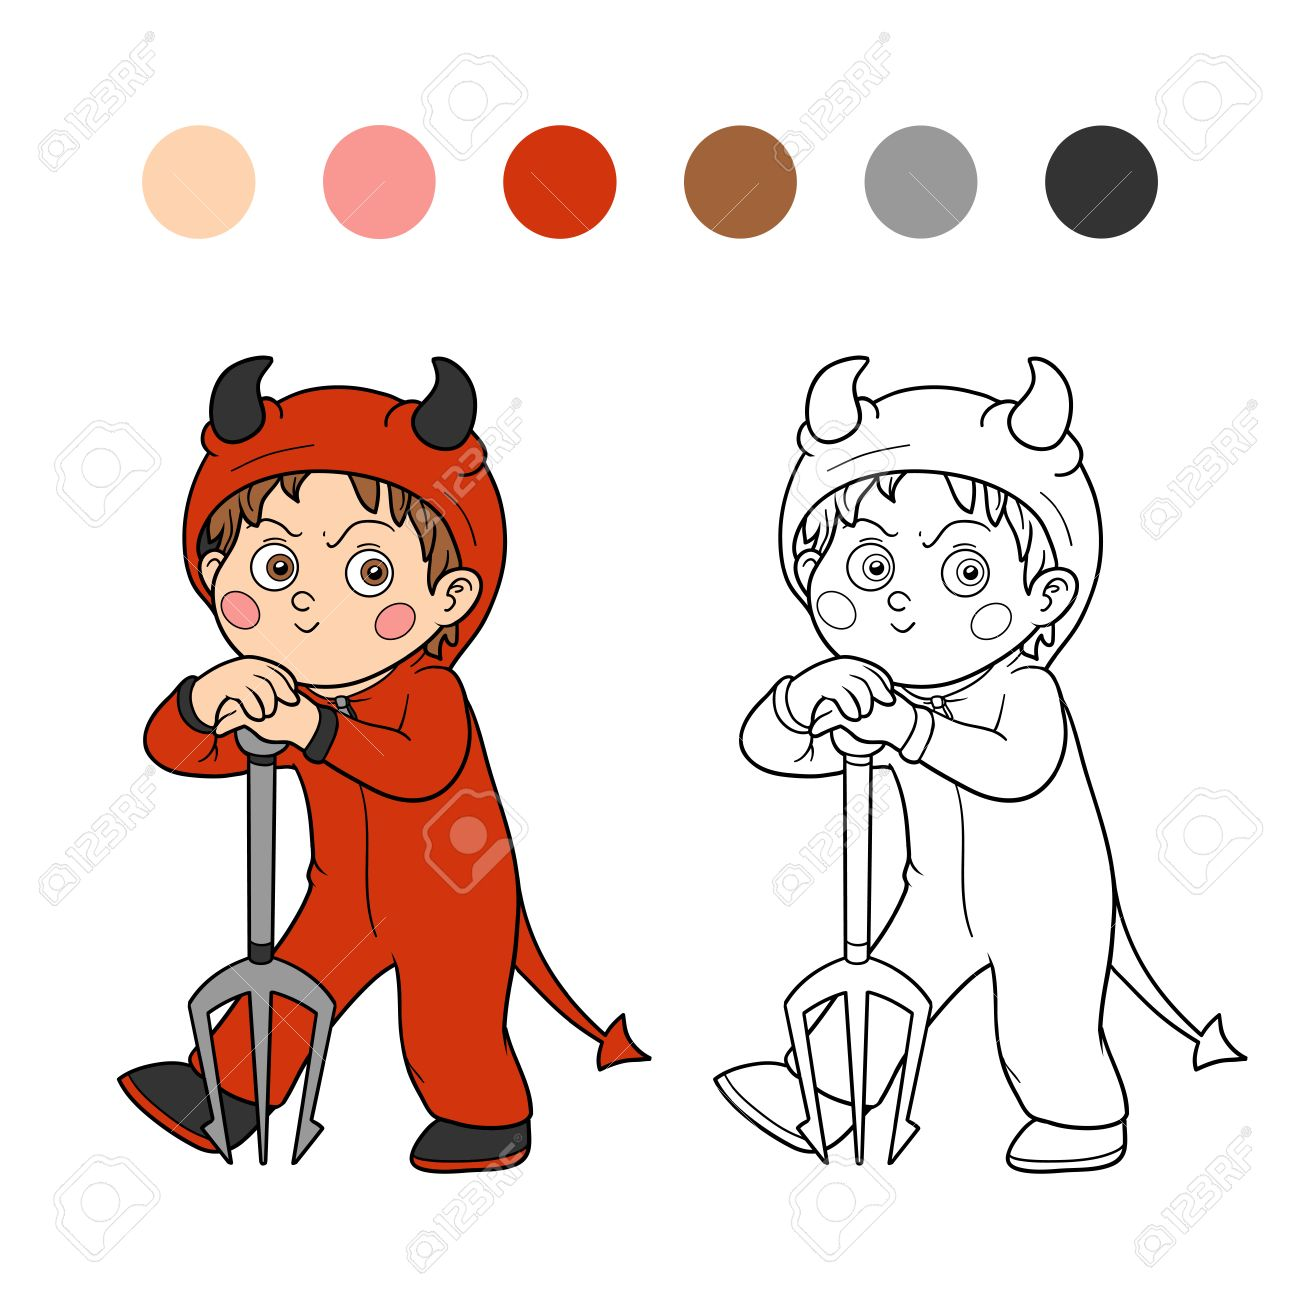 Co coloring books game - Co Coloring Book Pictures Of Halloween Coloring Book Game For Children Halloween Character Devil Stock